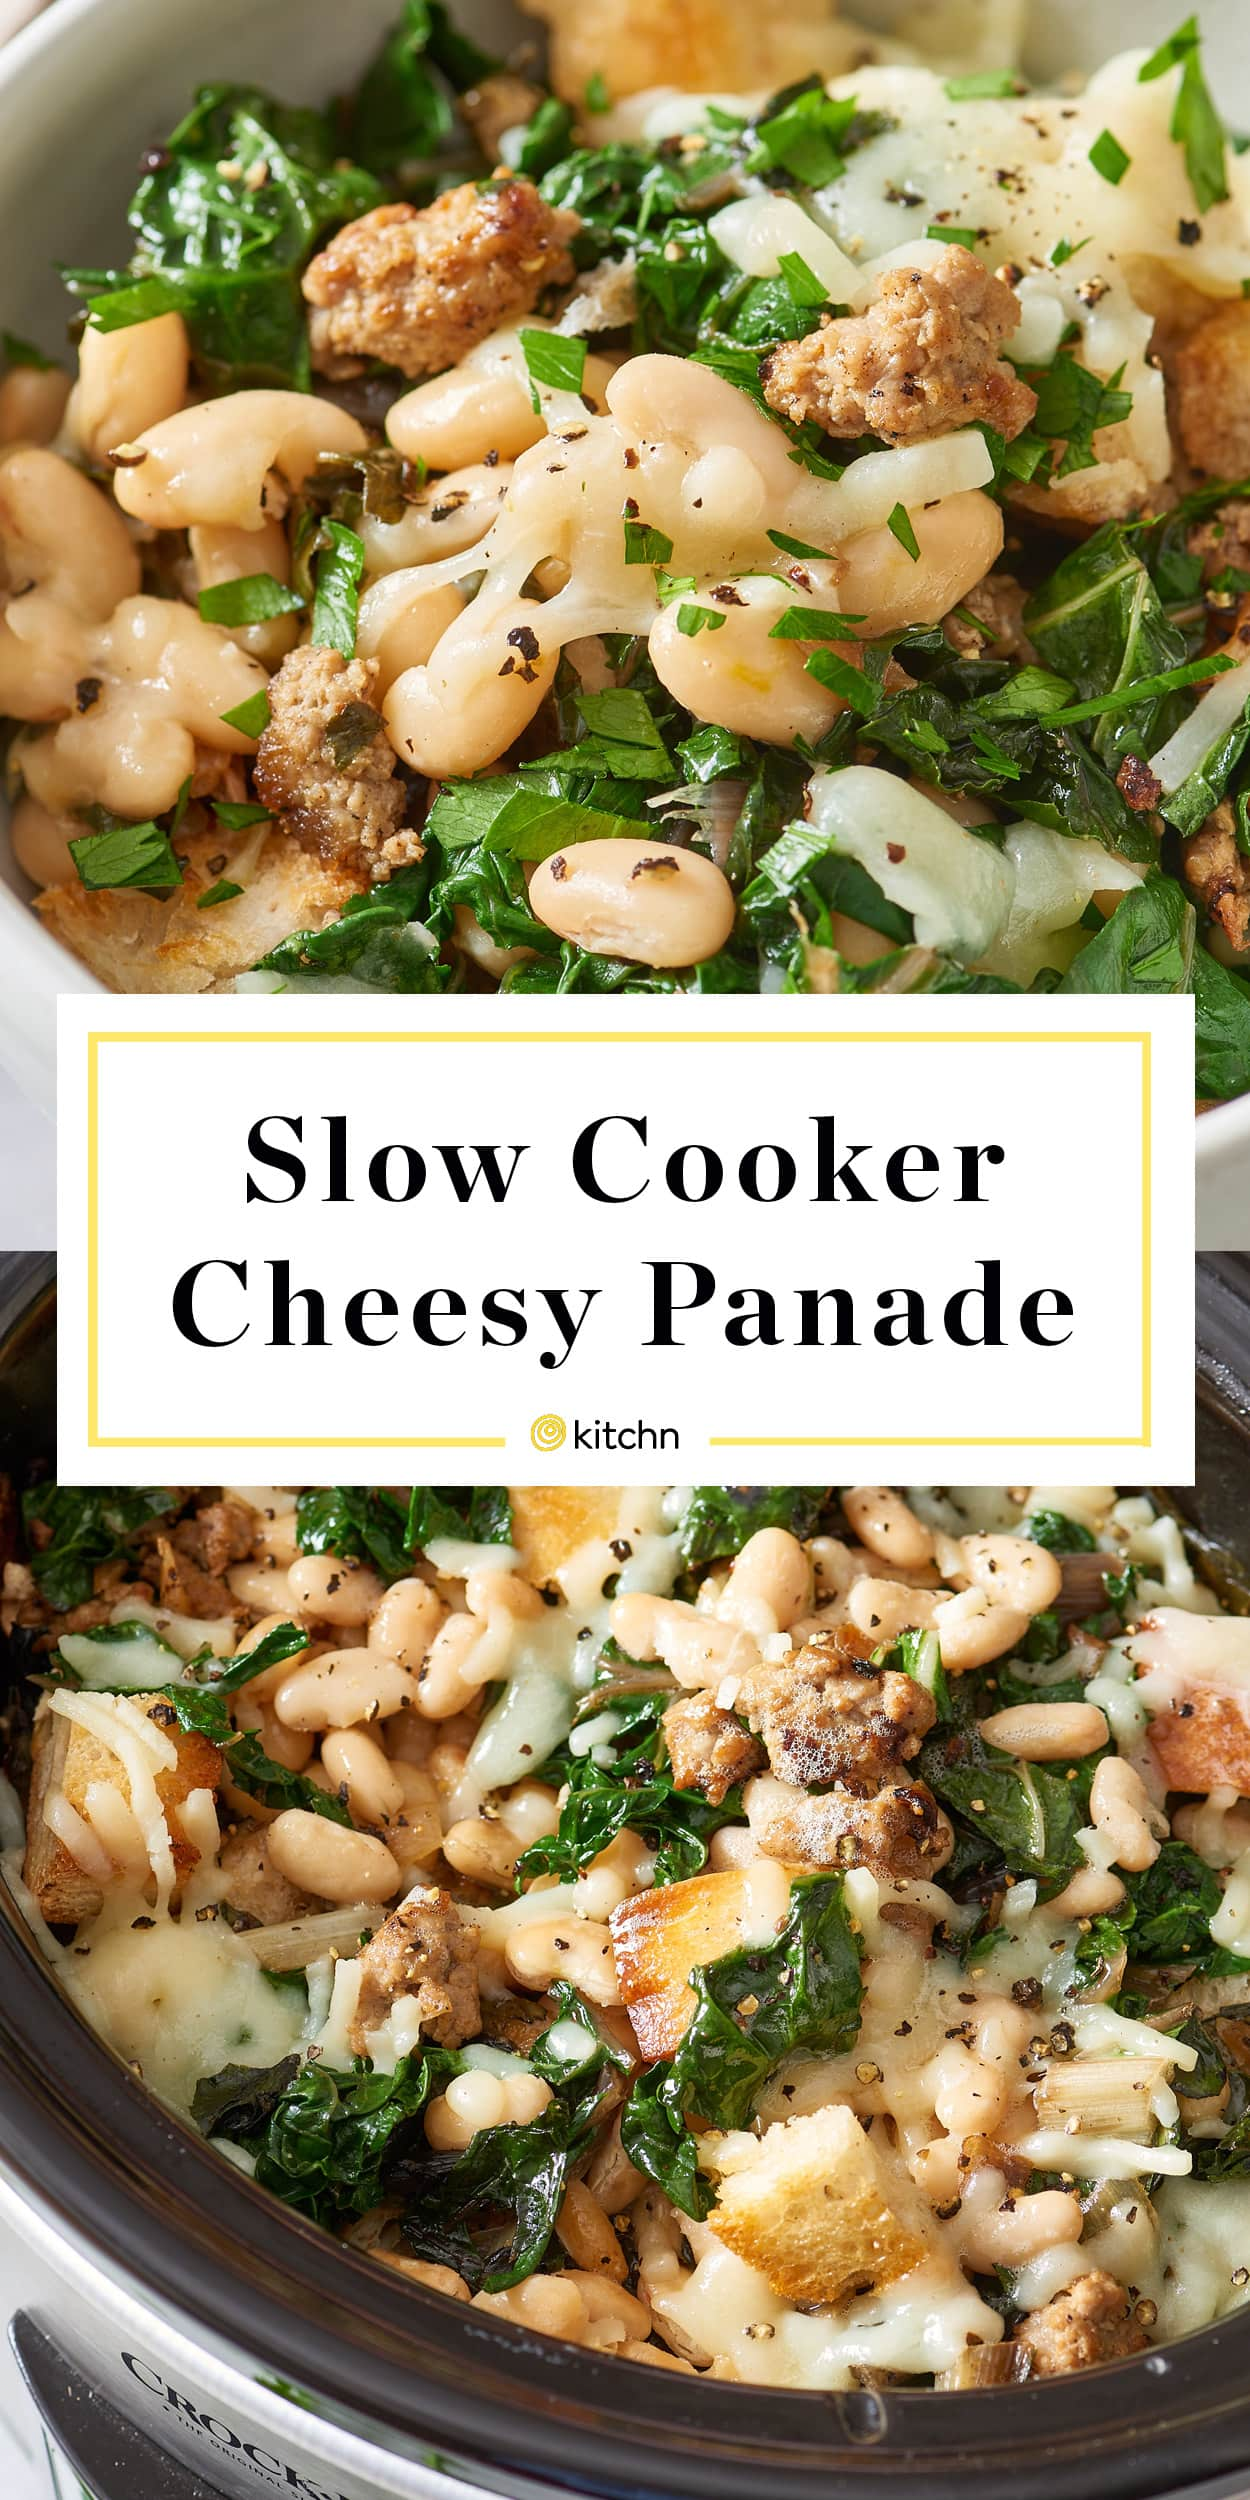 Slow Cooker Cheesy Panade